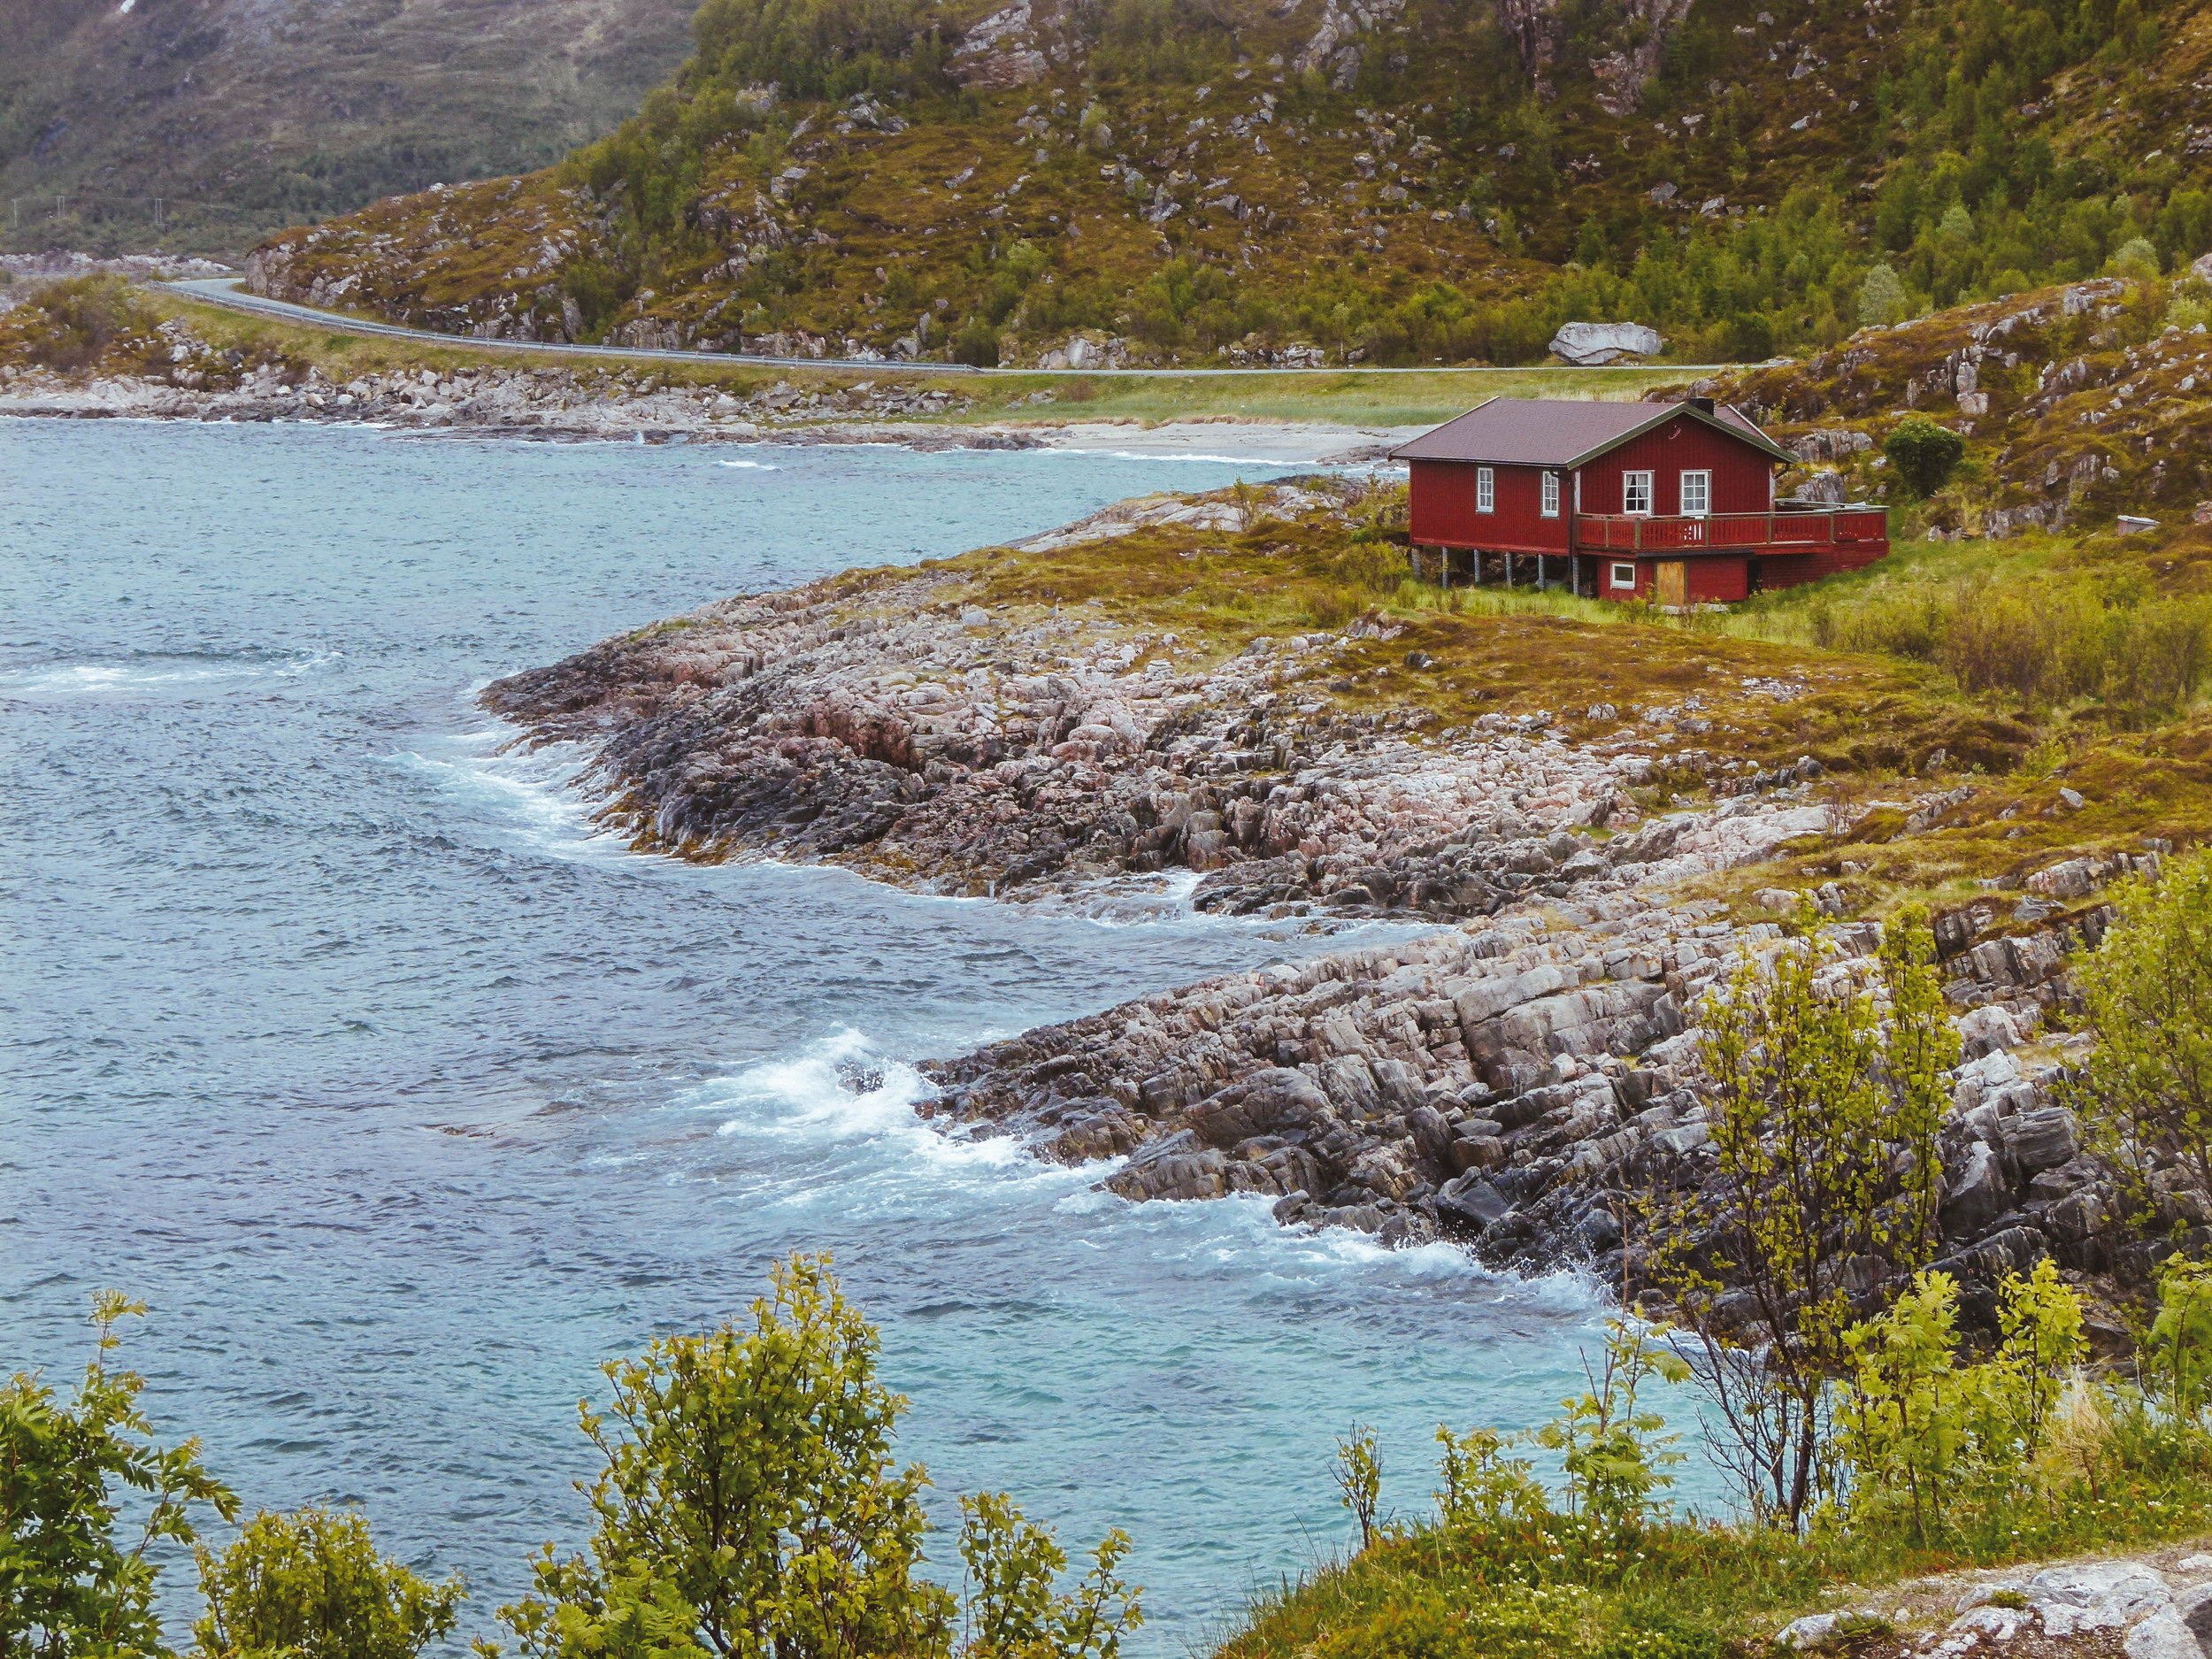 The road to Sommarøya